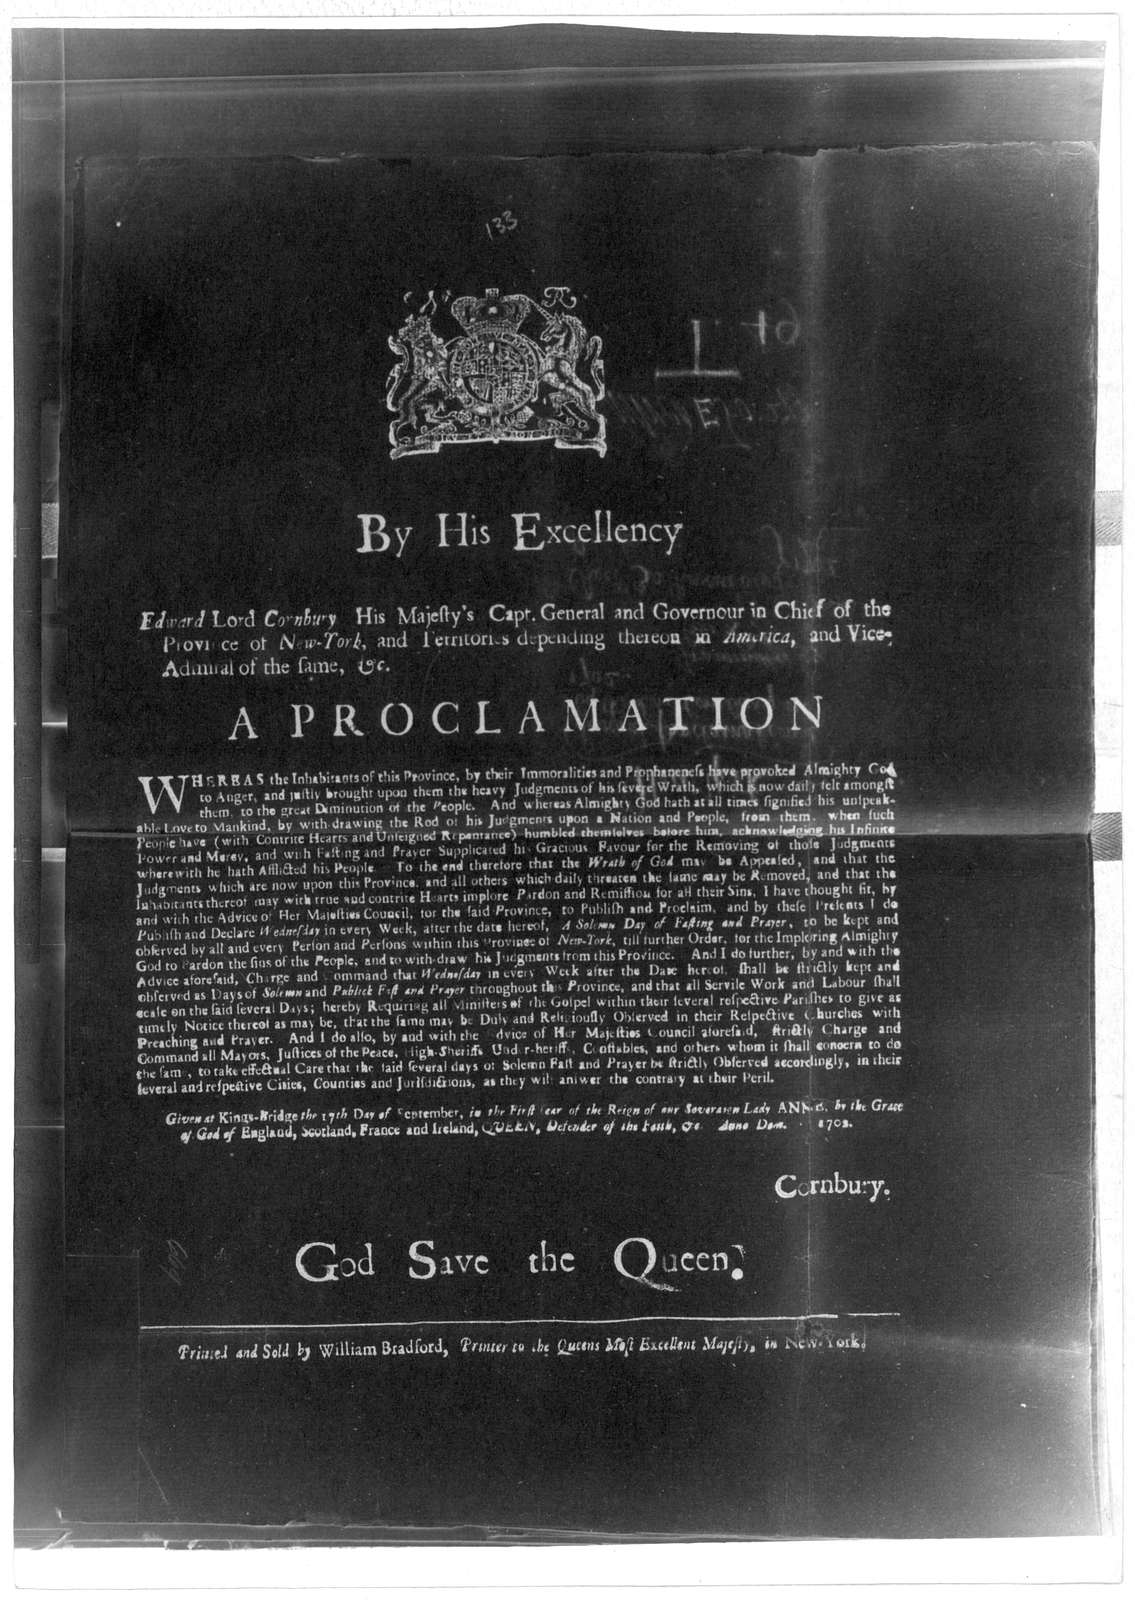 By His Excellency. Edward Lord Cornbury, Capt, General and Governour in Chief of the Province of New York ... A proclamation. Whereas the inhabitants of this Province, by their immortalities and prophaneness have provoked Almighty God to anger a